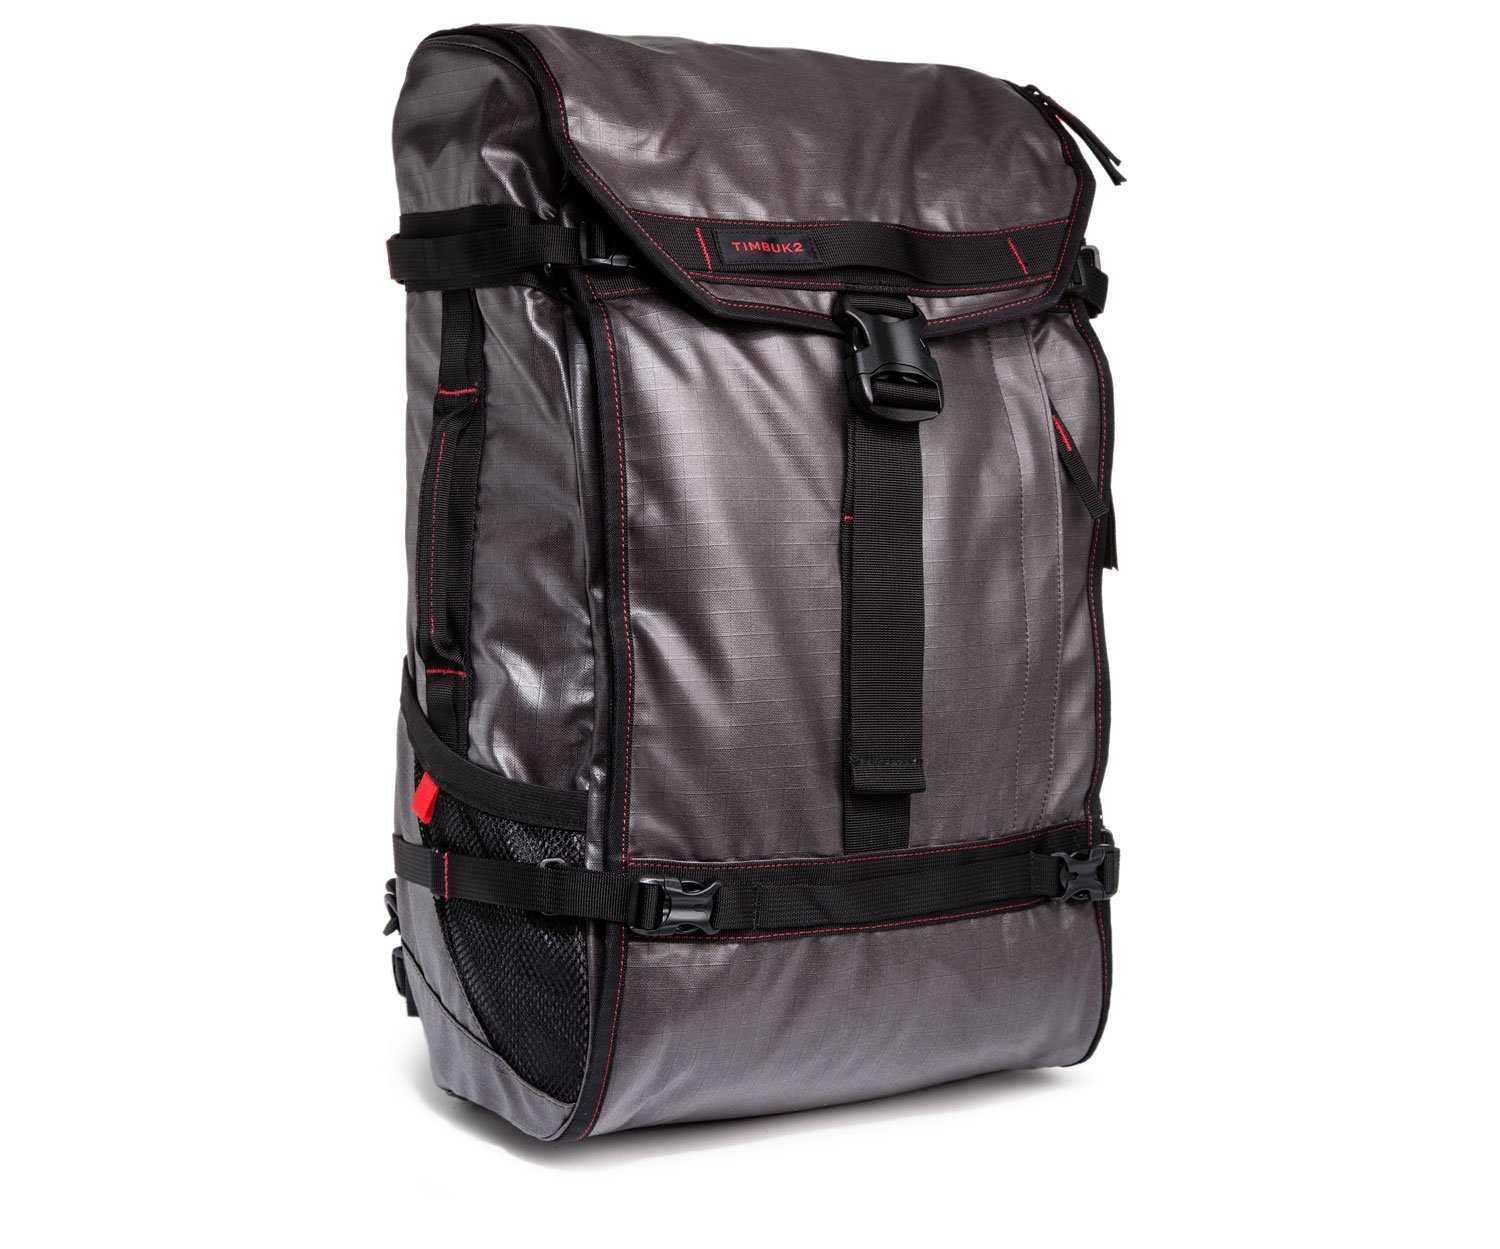 Timbuk2 Aviator Travel Backpack by Timbuk2